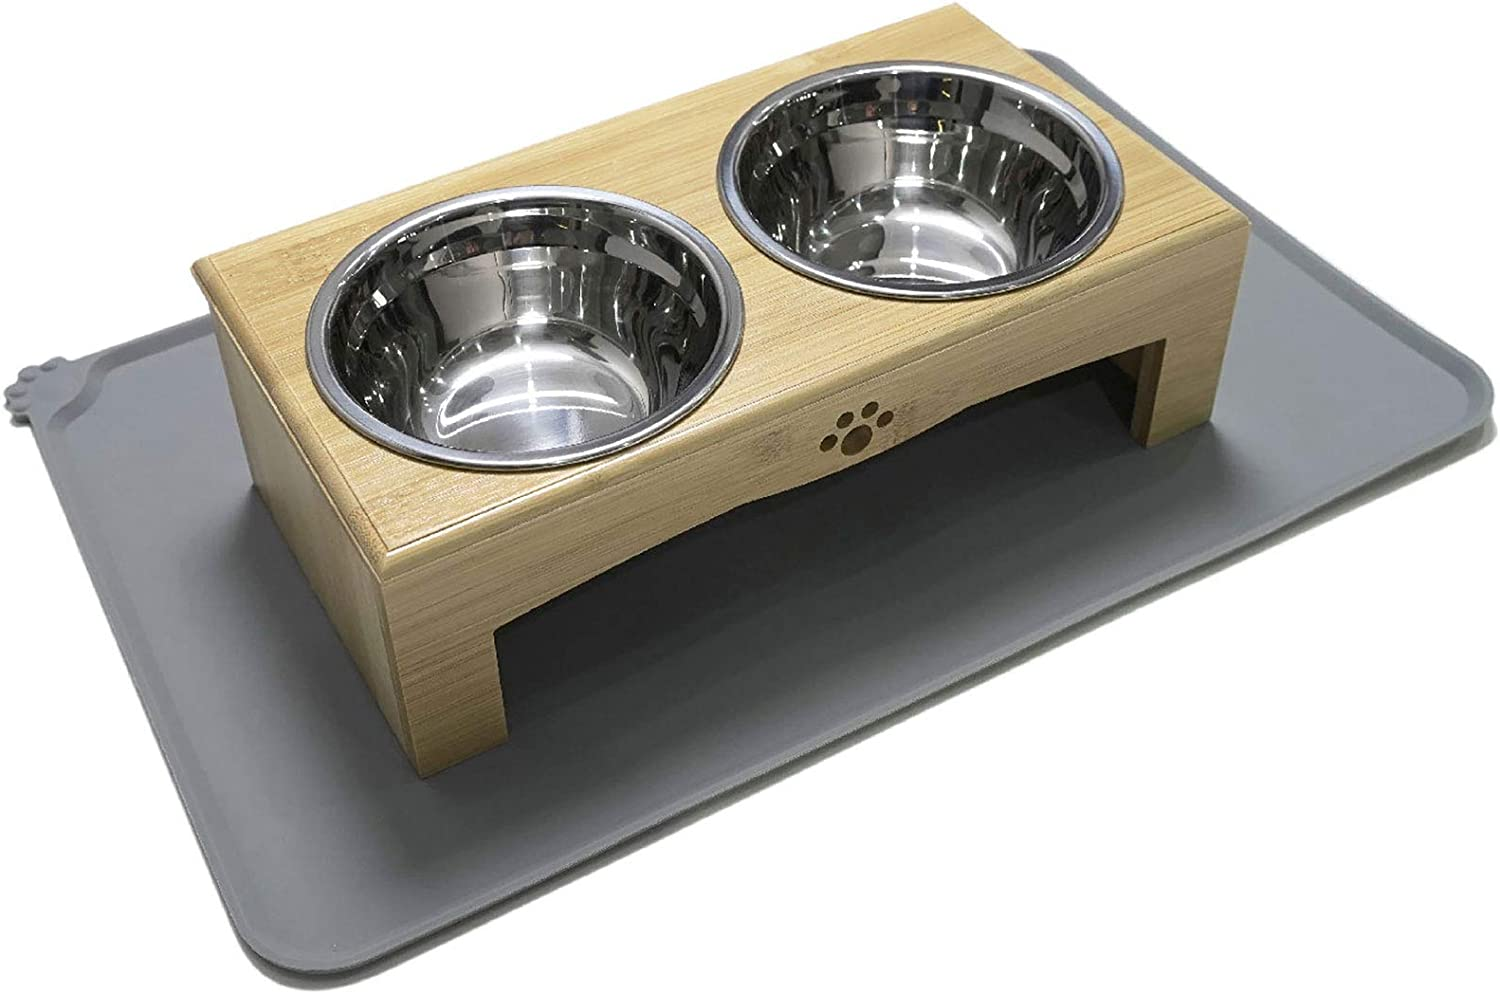 XKX Elevated Dog Bowls, Dog Bowl Stand Feeder with Silicone Mat for Small Dogs and Cats, Raised Dog Bowl, Dog Food Bowls with Stand, Pet Food and Water Bowls for Puppies and Kittens